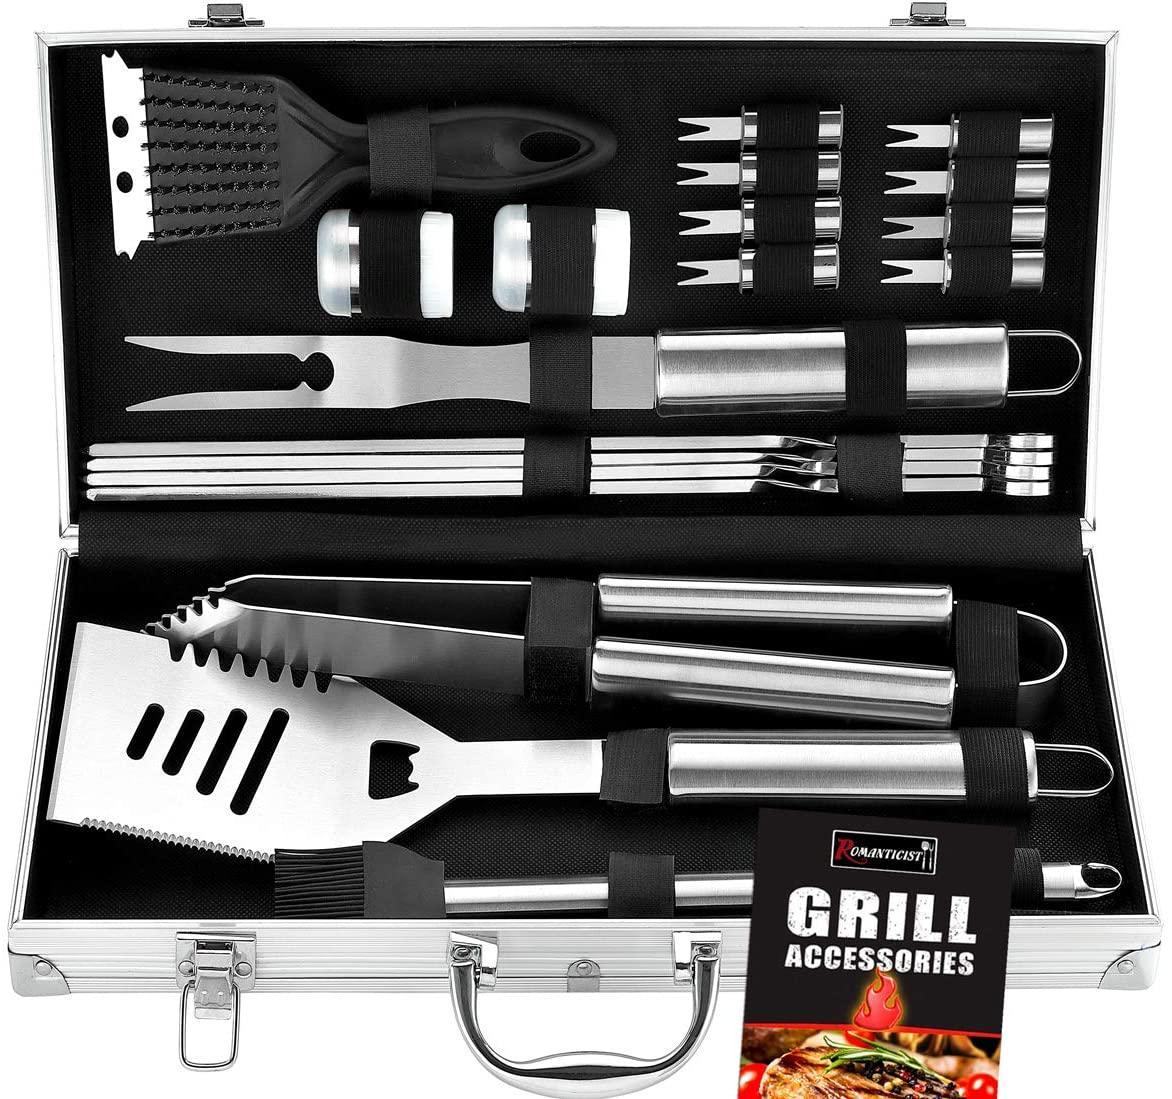 If your dad loves to fire up the grill, get him this great BBQ grill set